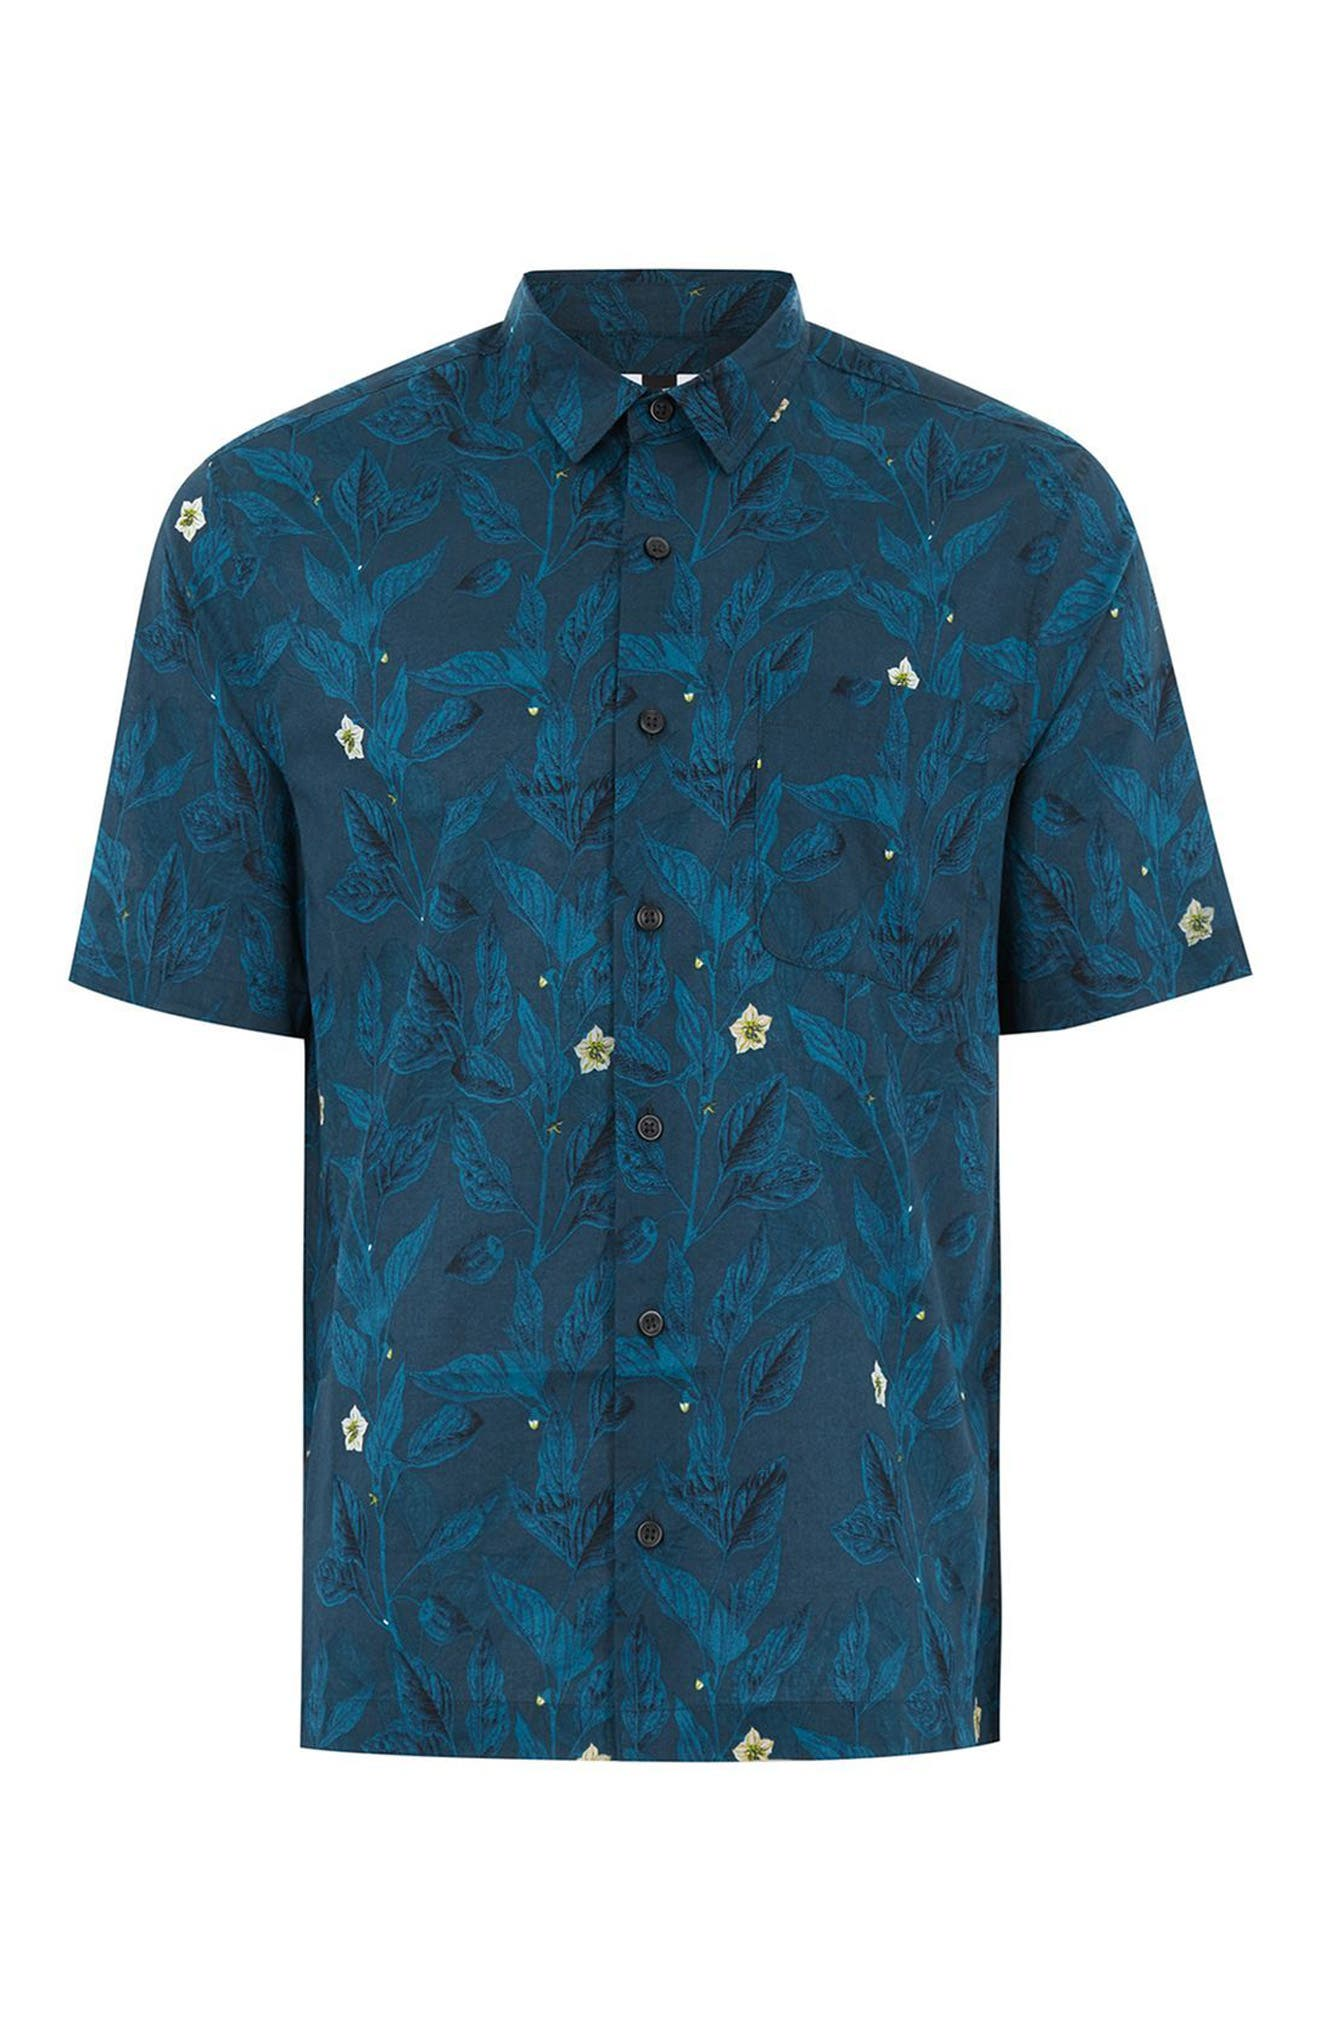 Floral Print Shirt,                             Alternate thumbnail 4, color,                             400